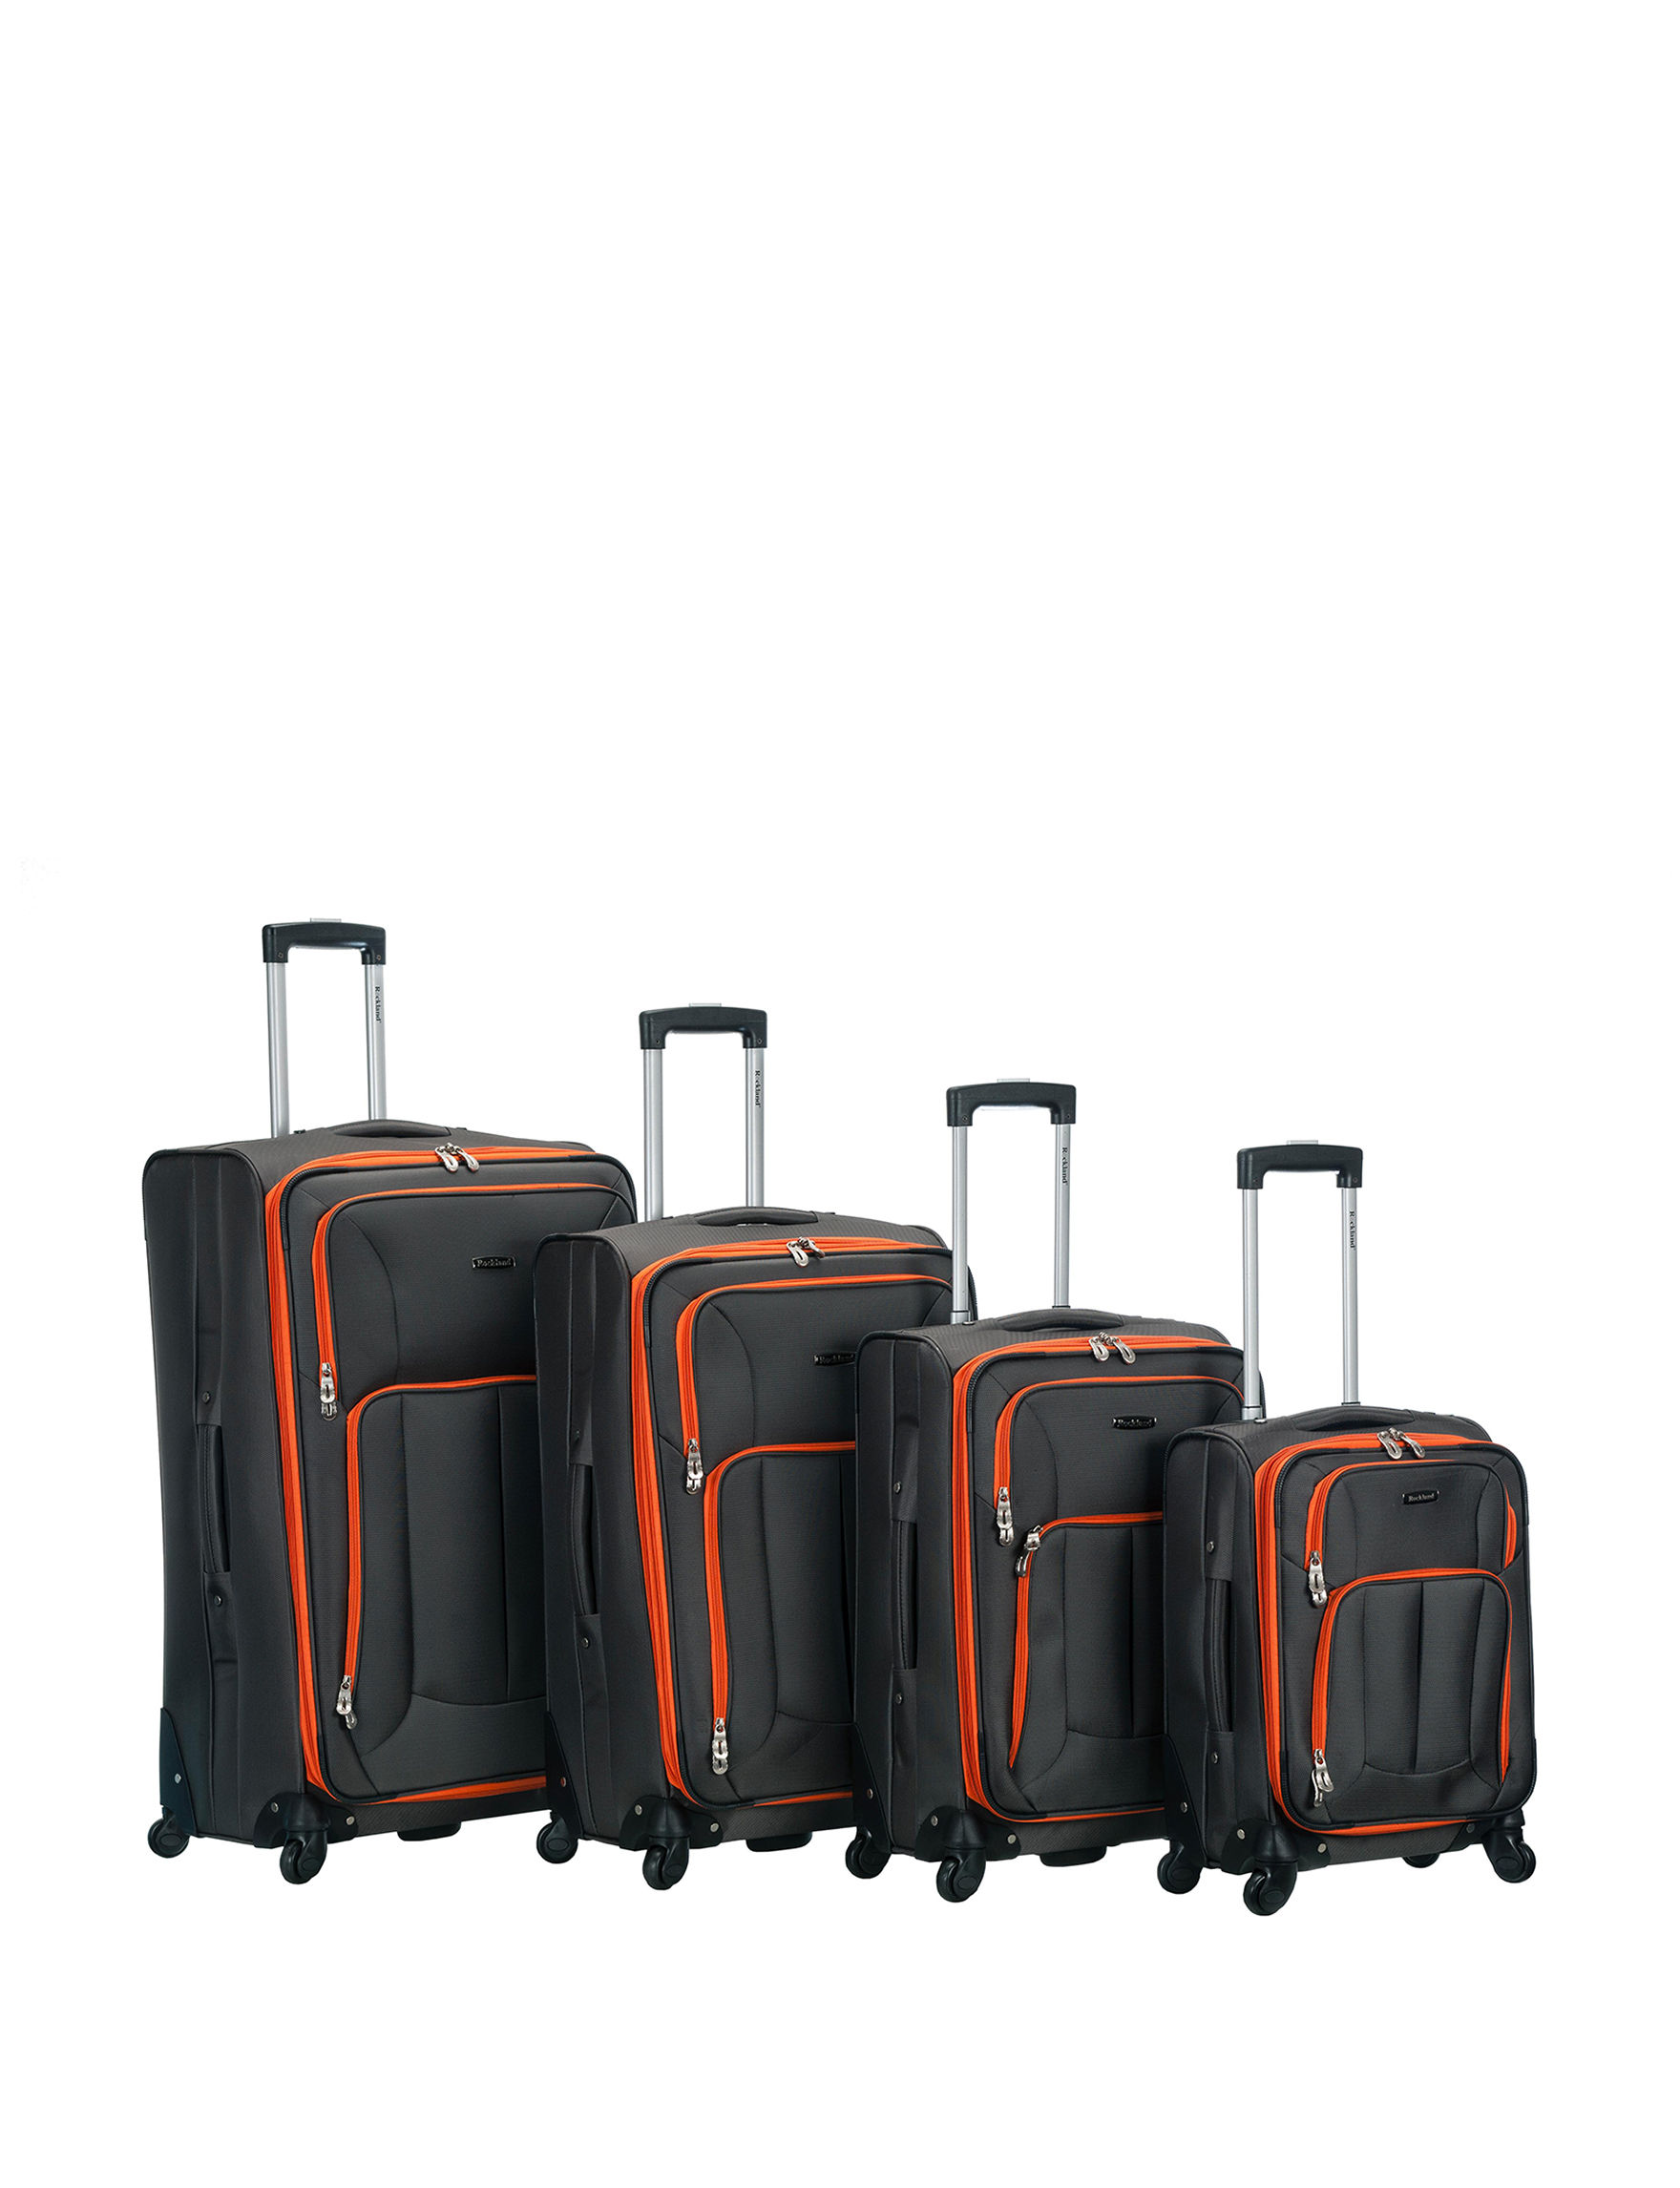 Rockland Charcoal Luggage Sets